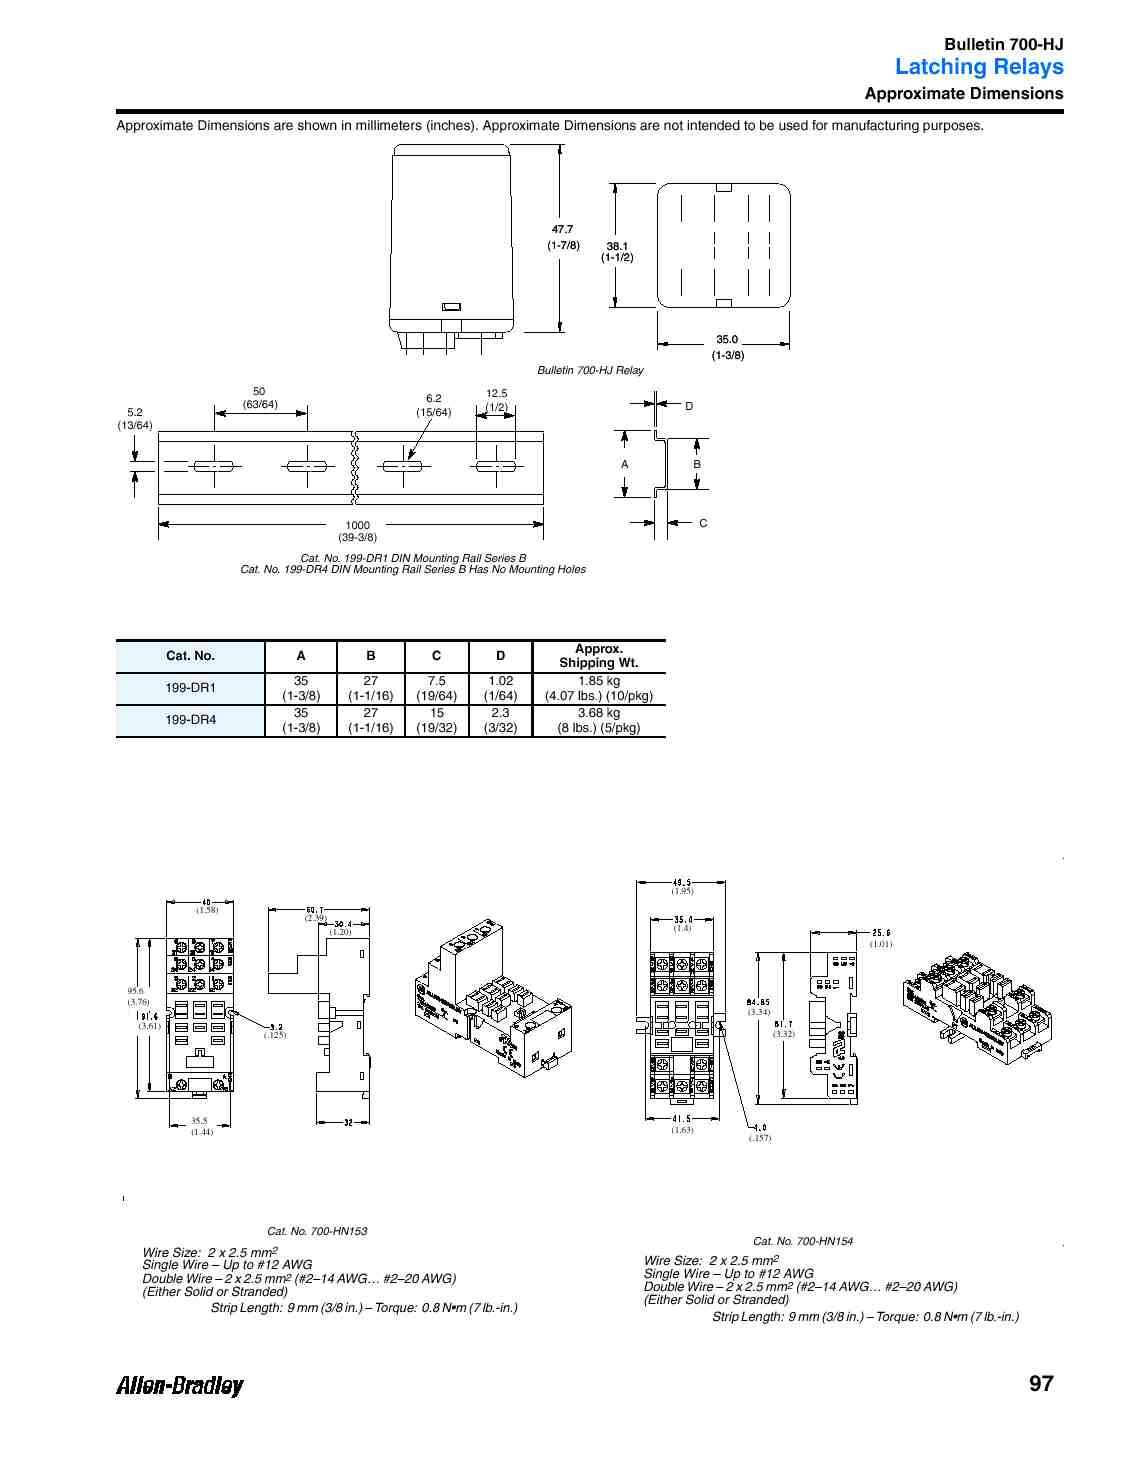 allen dley 700 relay socket wiring diagram dley free printable wiring diagrams